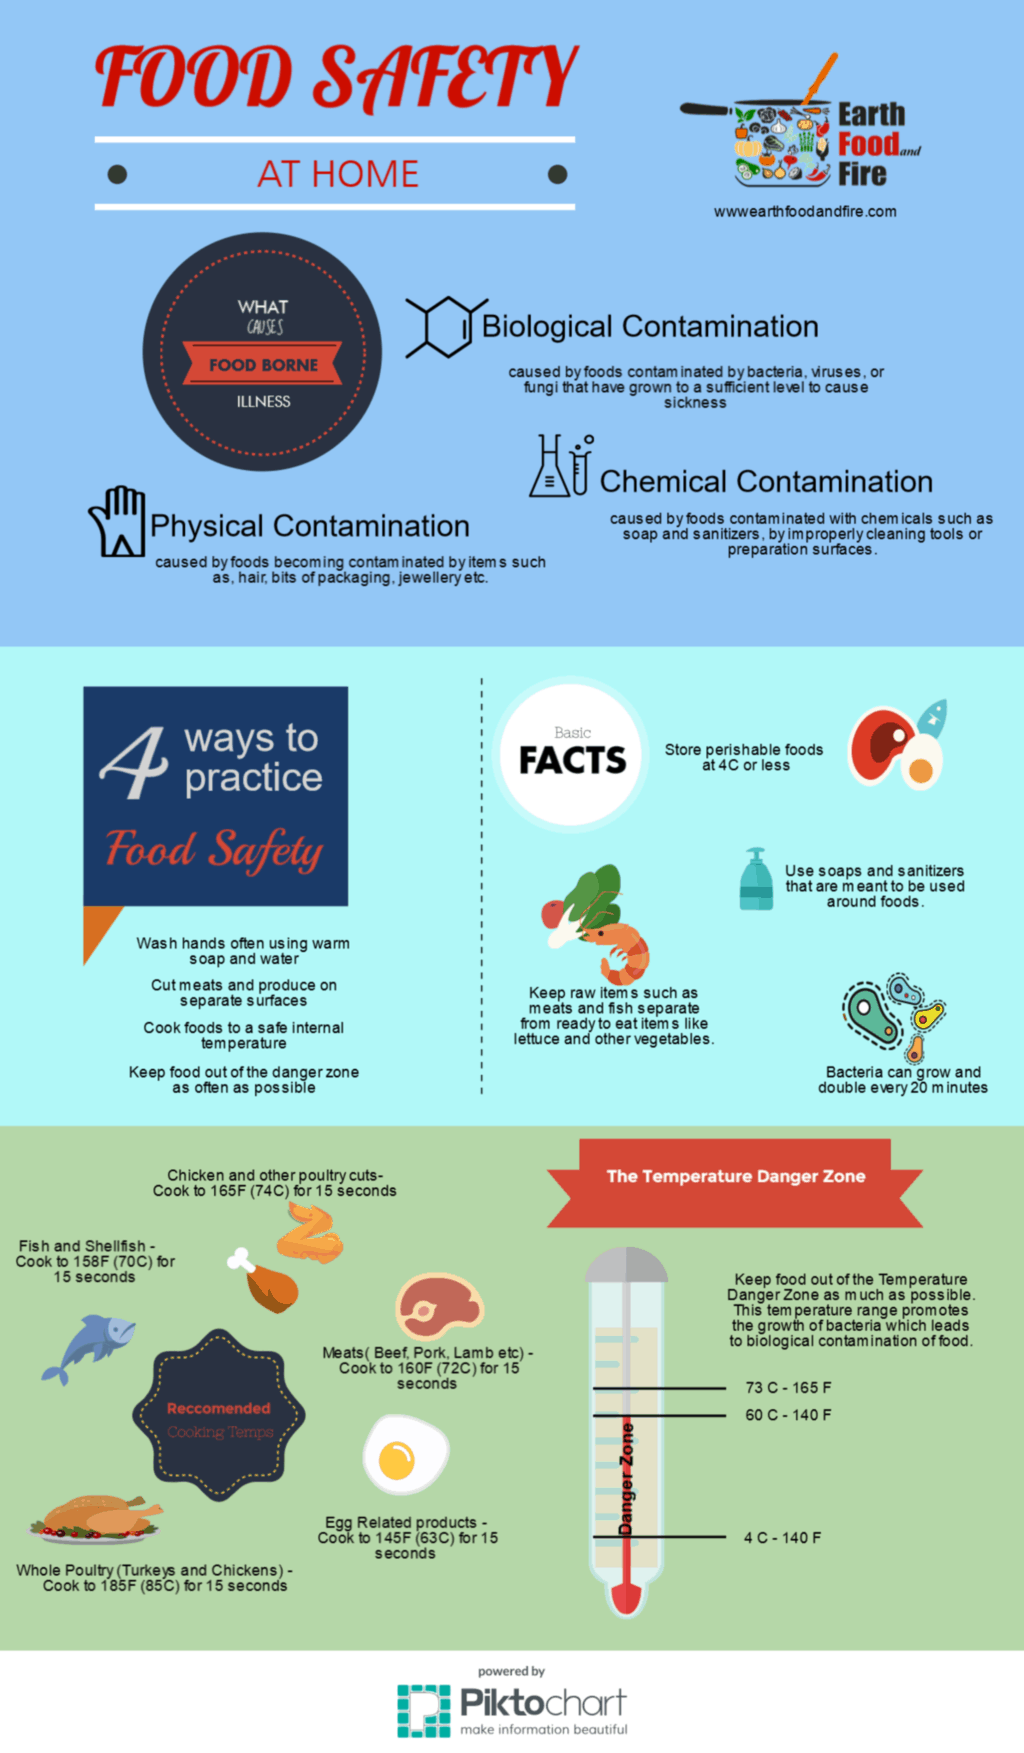 Basic Food Safety at Home